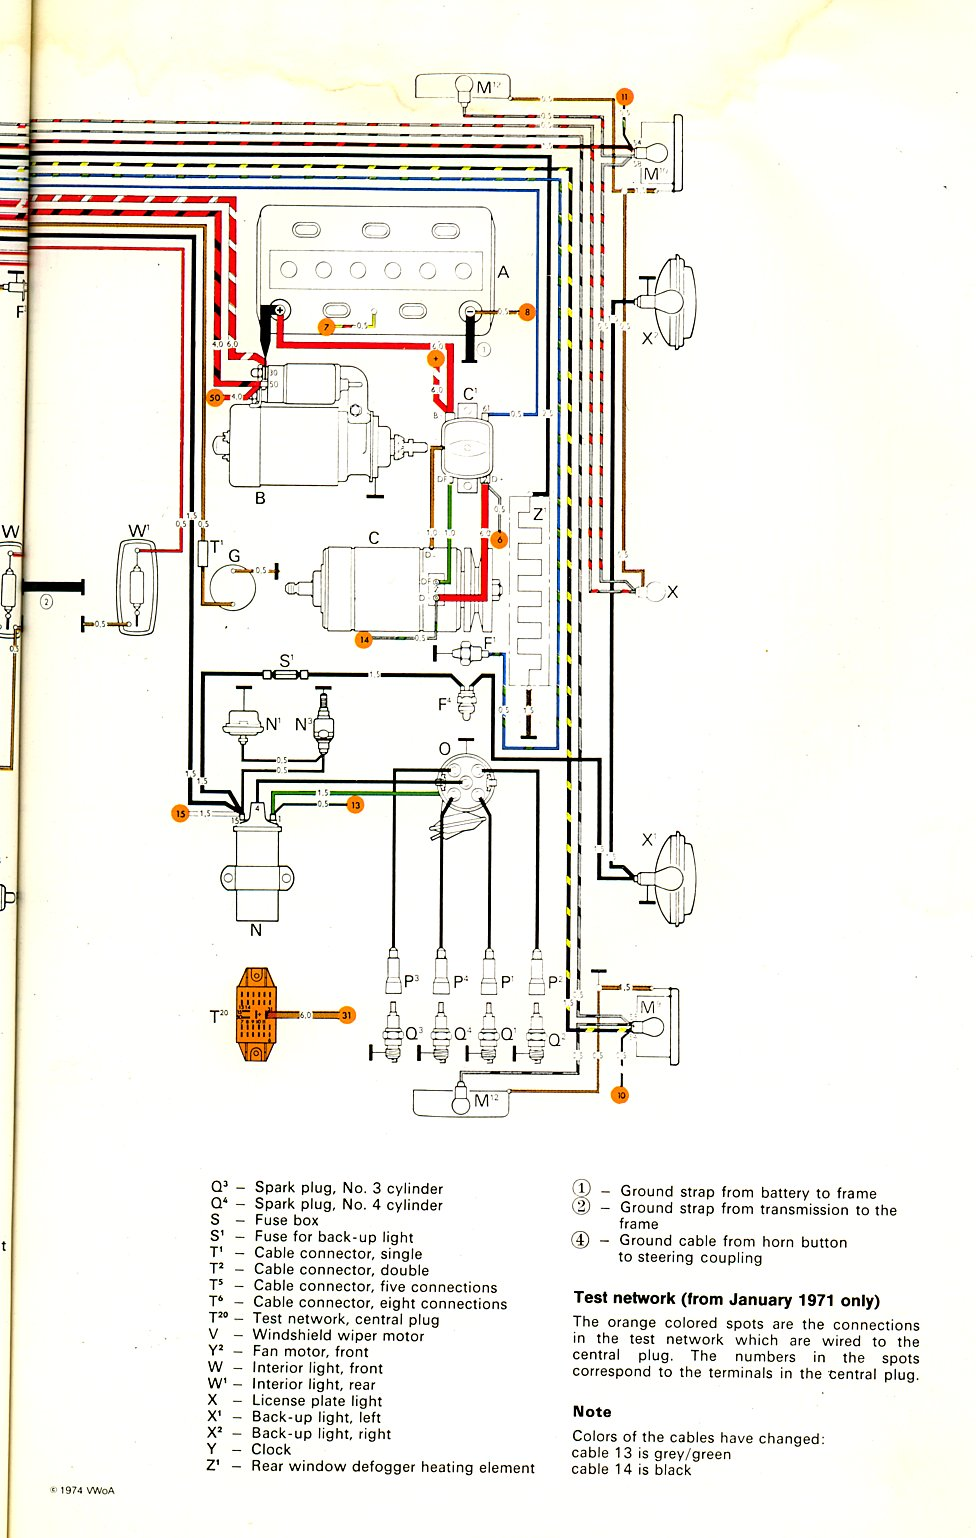 Type 2 Wiring Diagrams Electrical Plugs Diagram